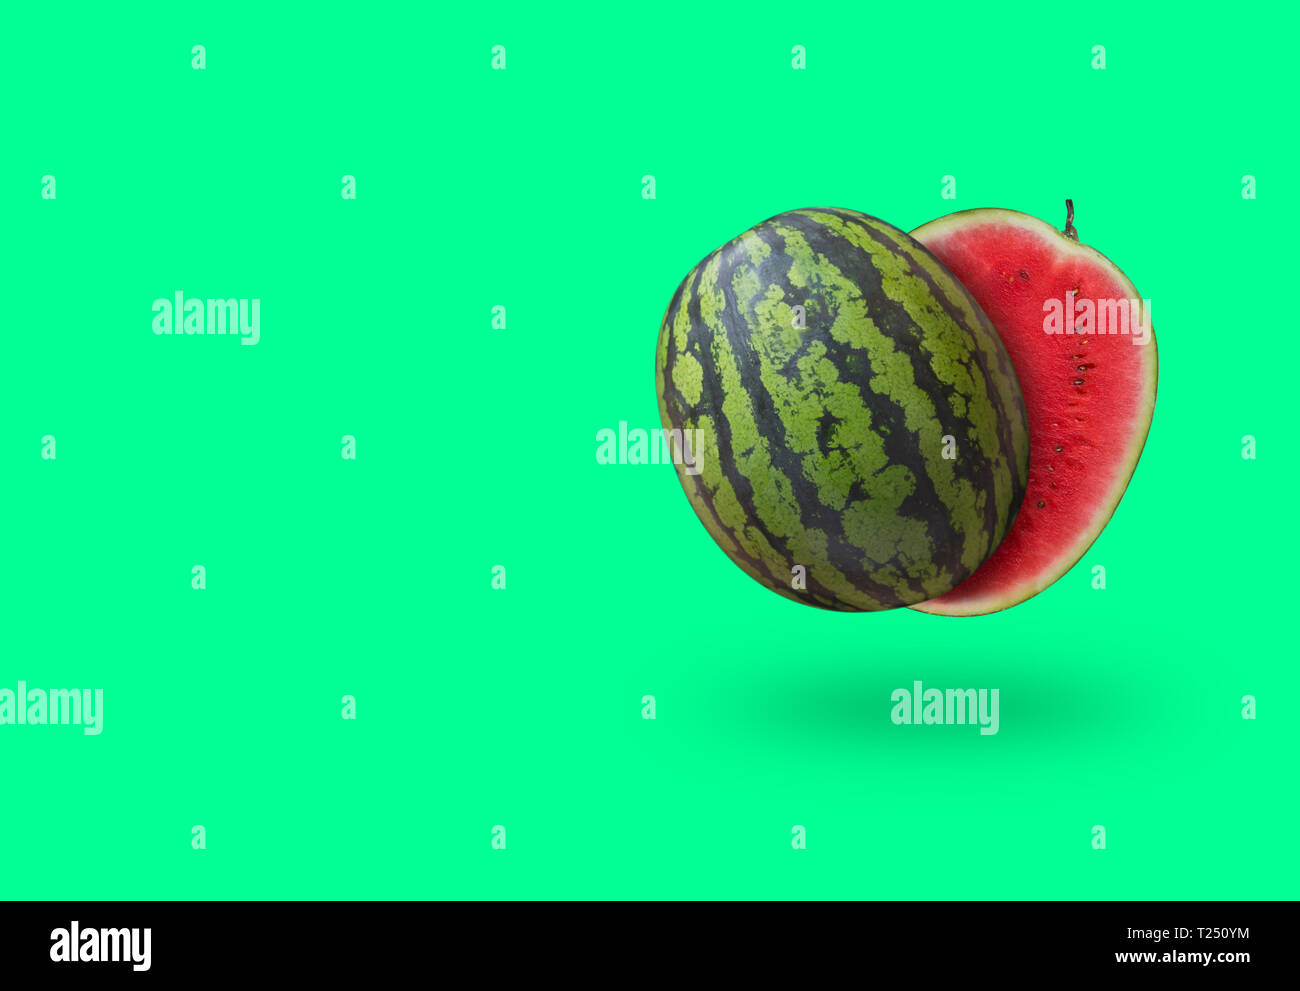 Cutted watermelon isolated on green pastel background with a shadow and copy space. Horizontal orientation - Stock Image